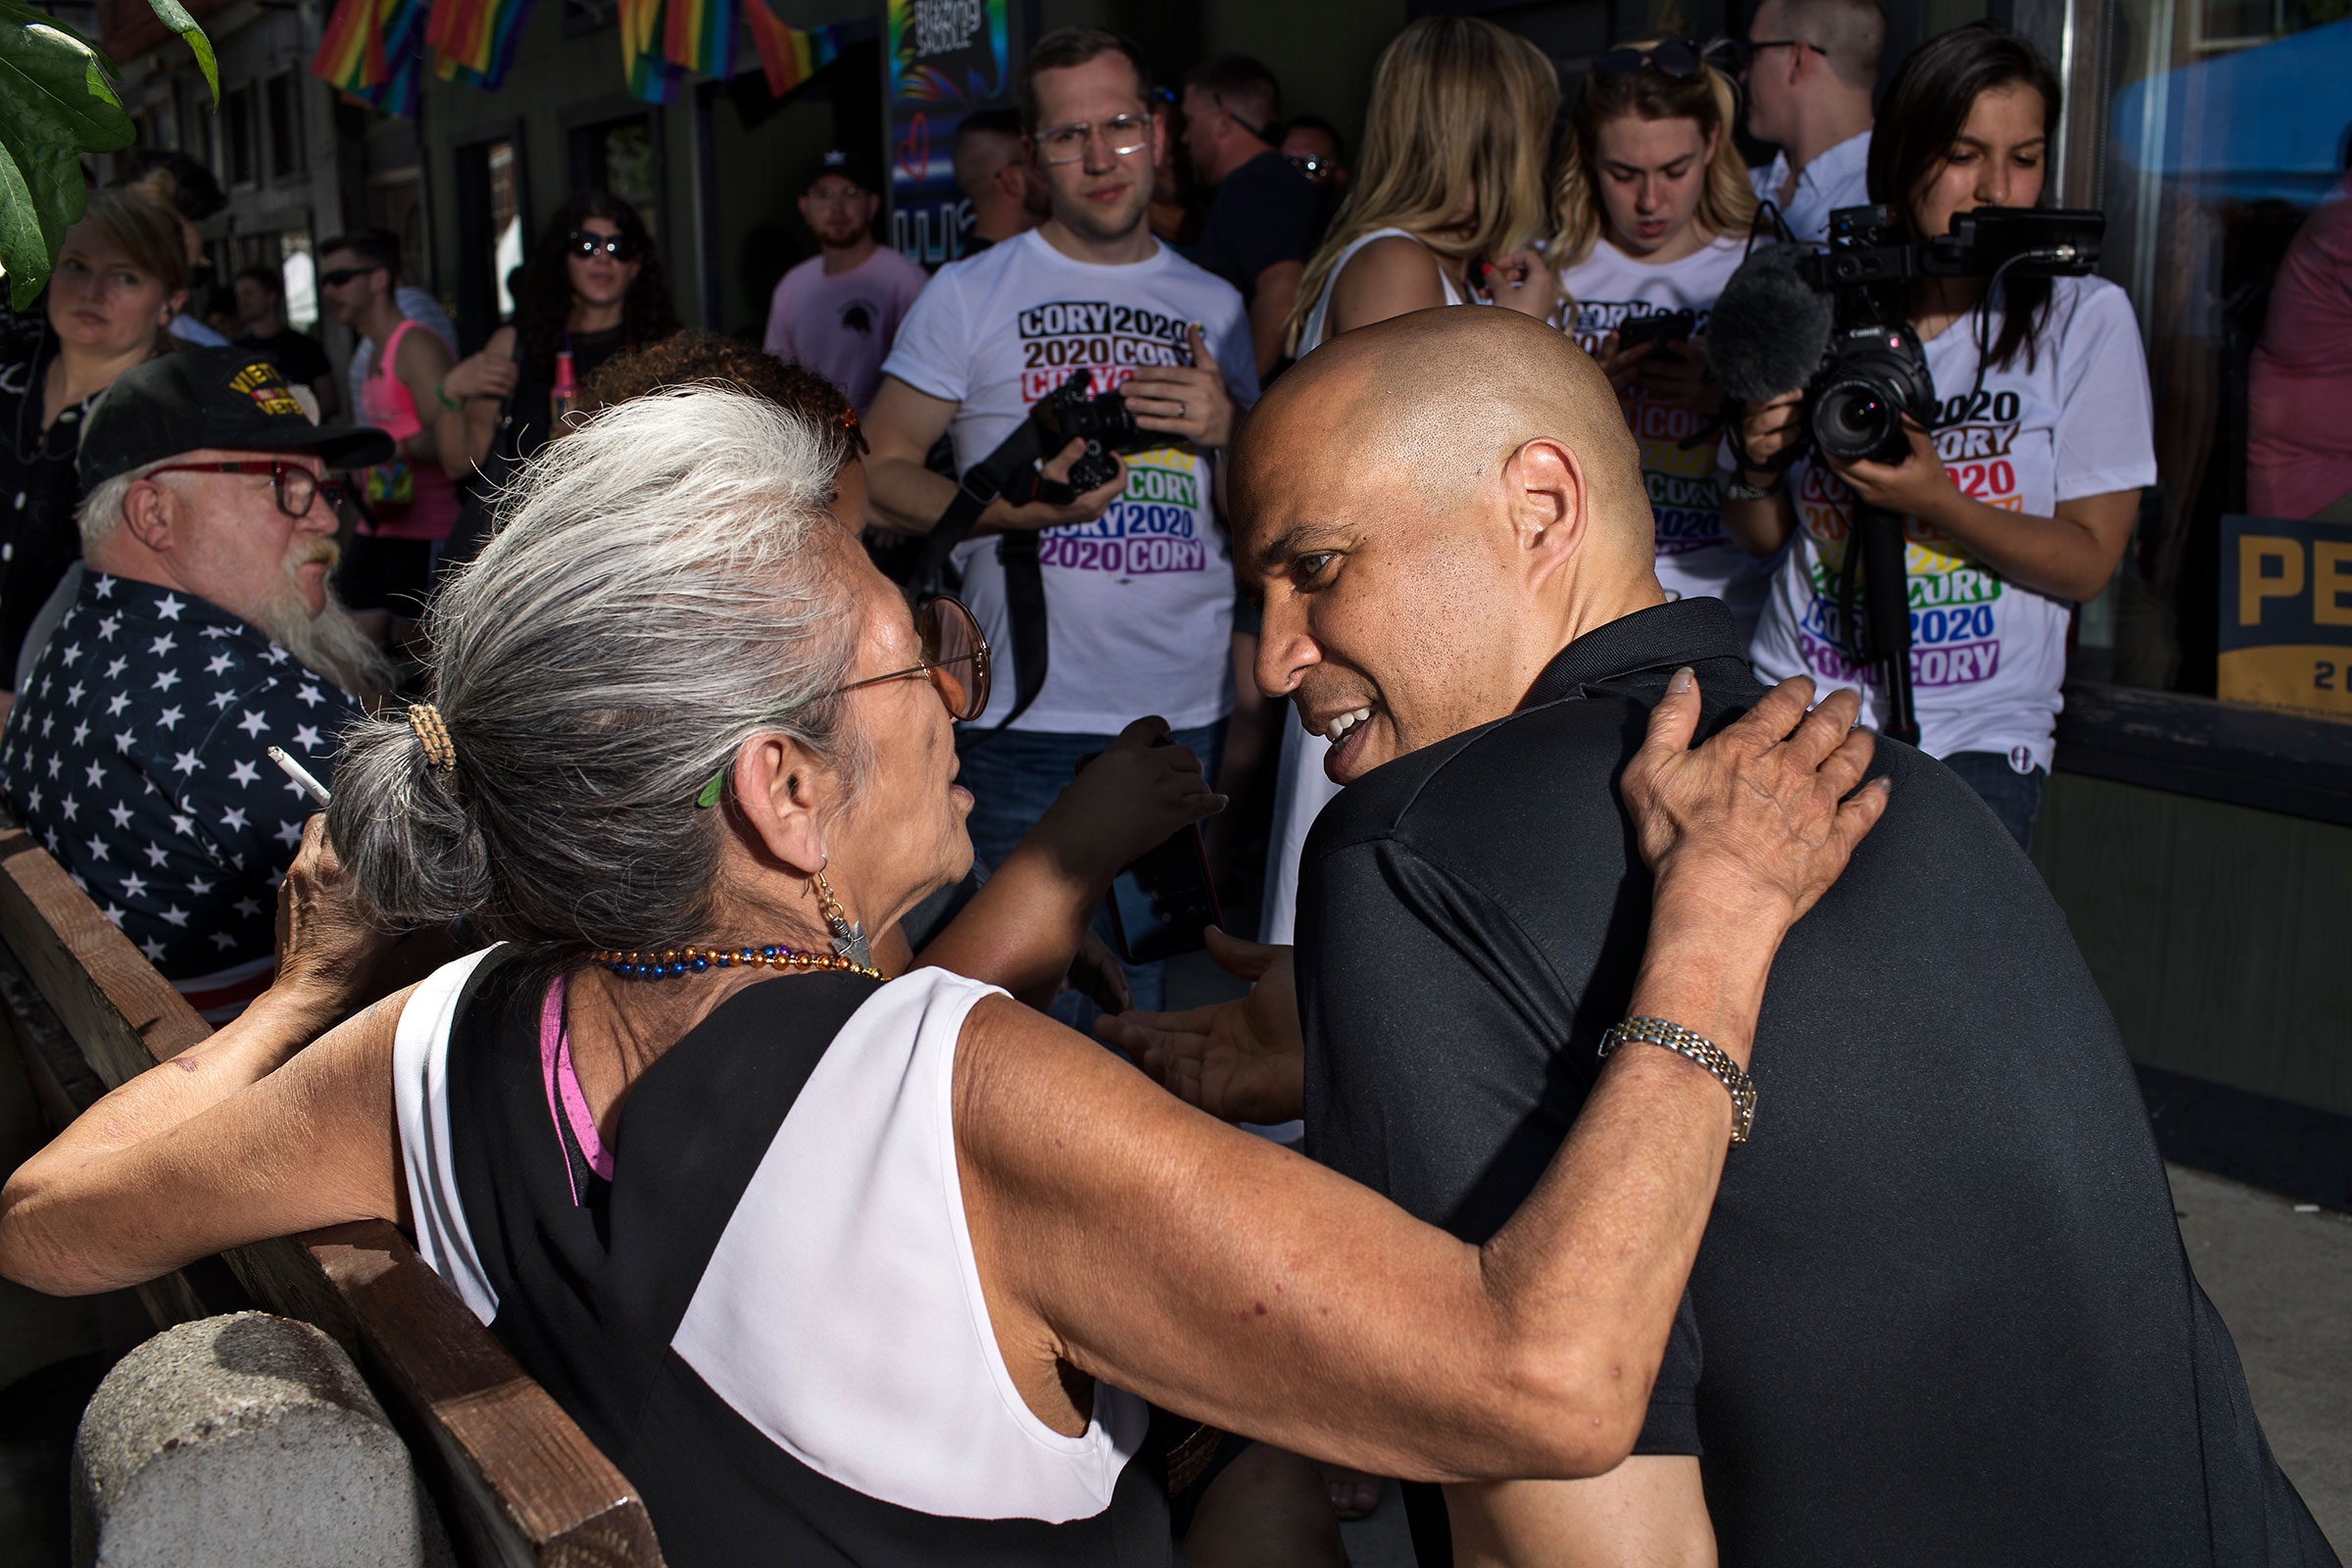 Booker speaks with a community member in Des Moines' East Village neighborhood during the Capital City Pride Festival on June 8.